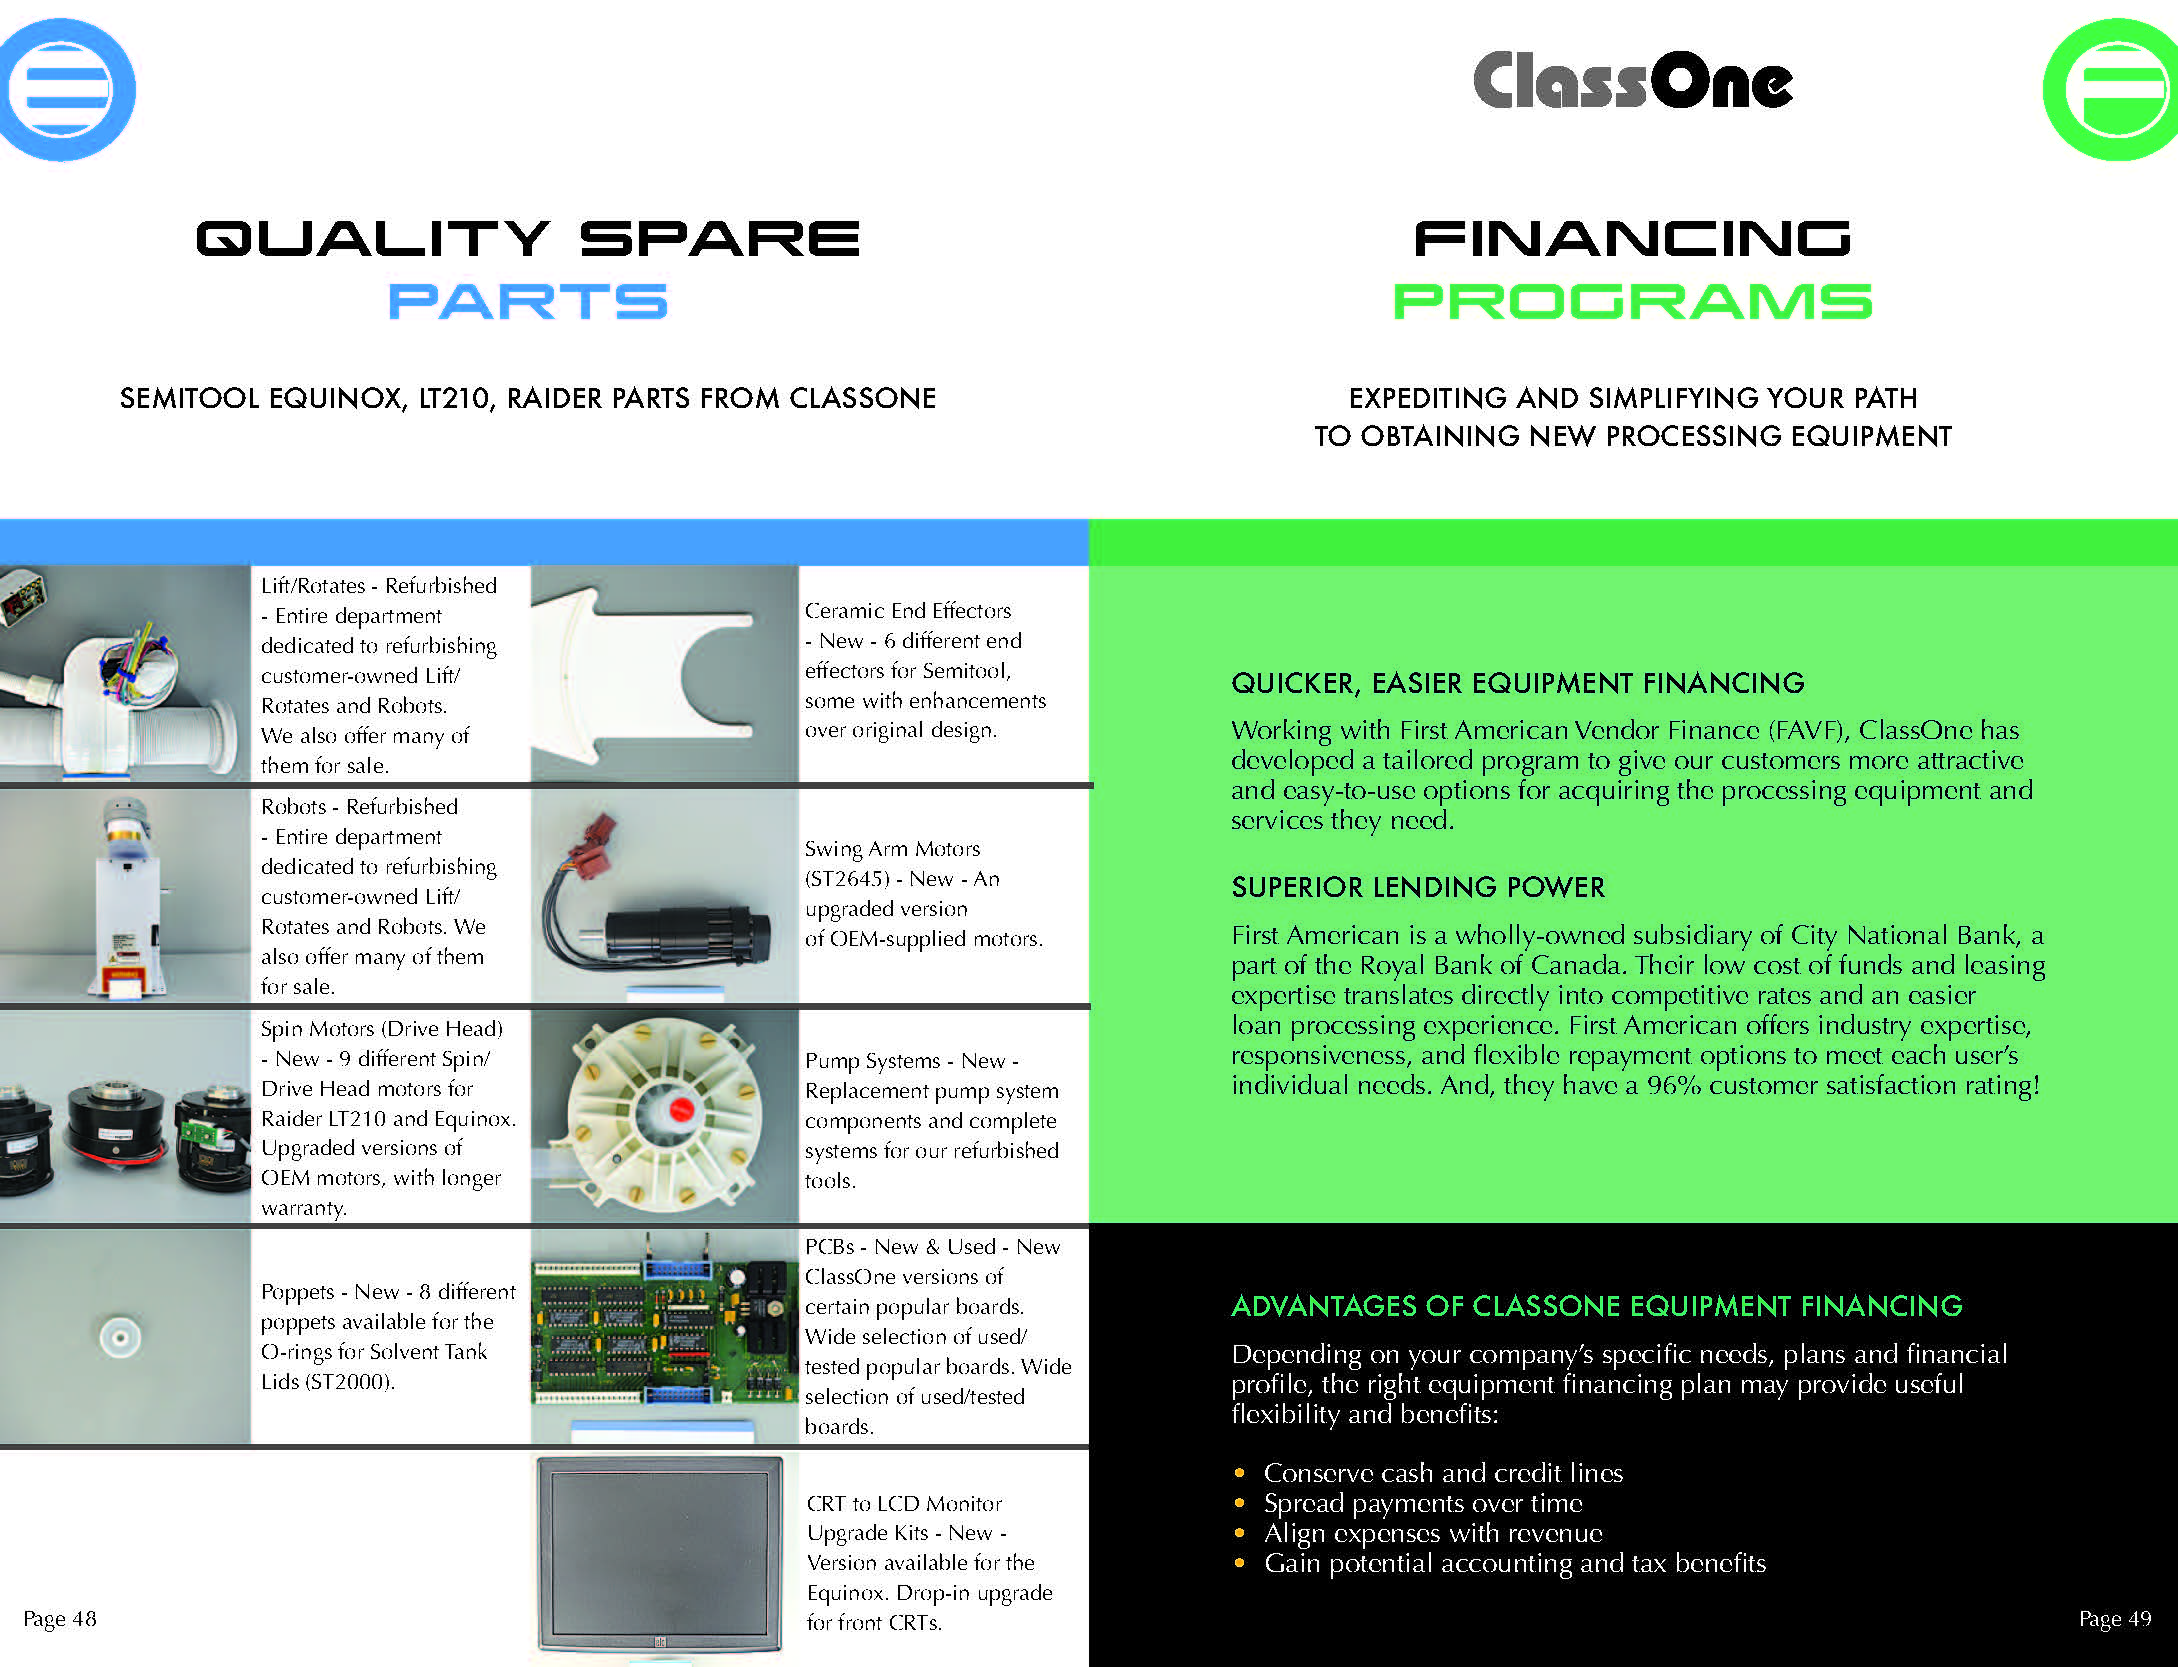 ClassOne Booklet v1_Page_25.jpg